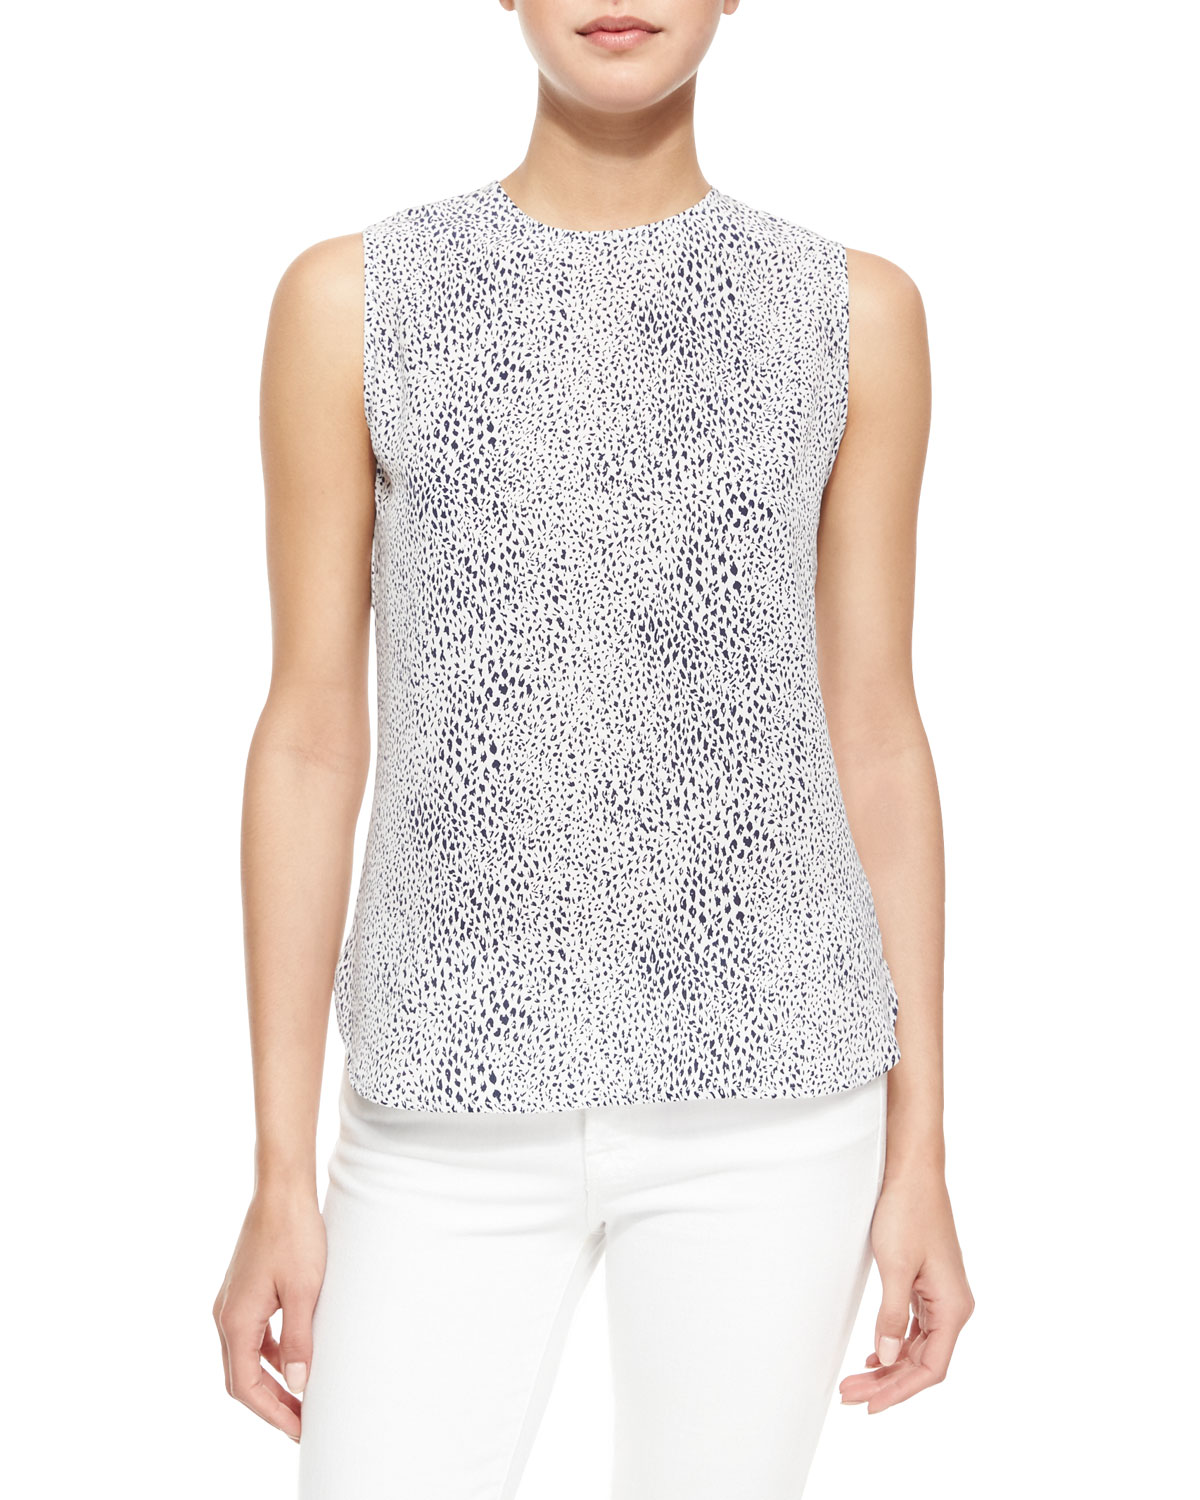 Lyle Animal-Print Tank, Bright White